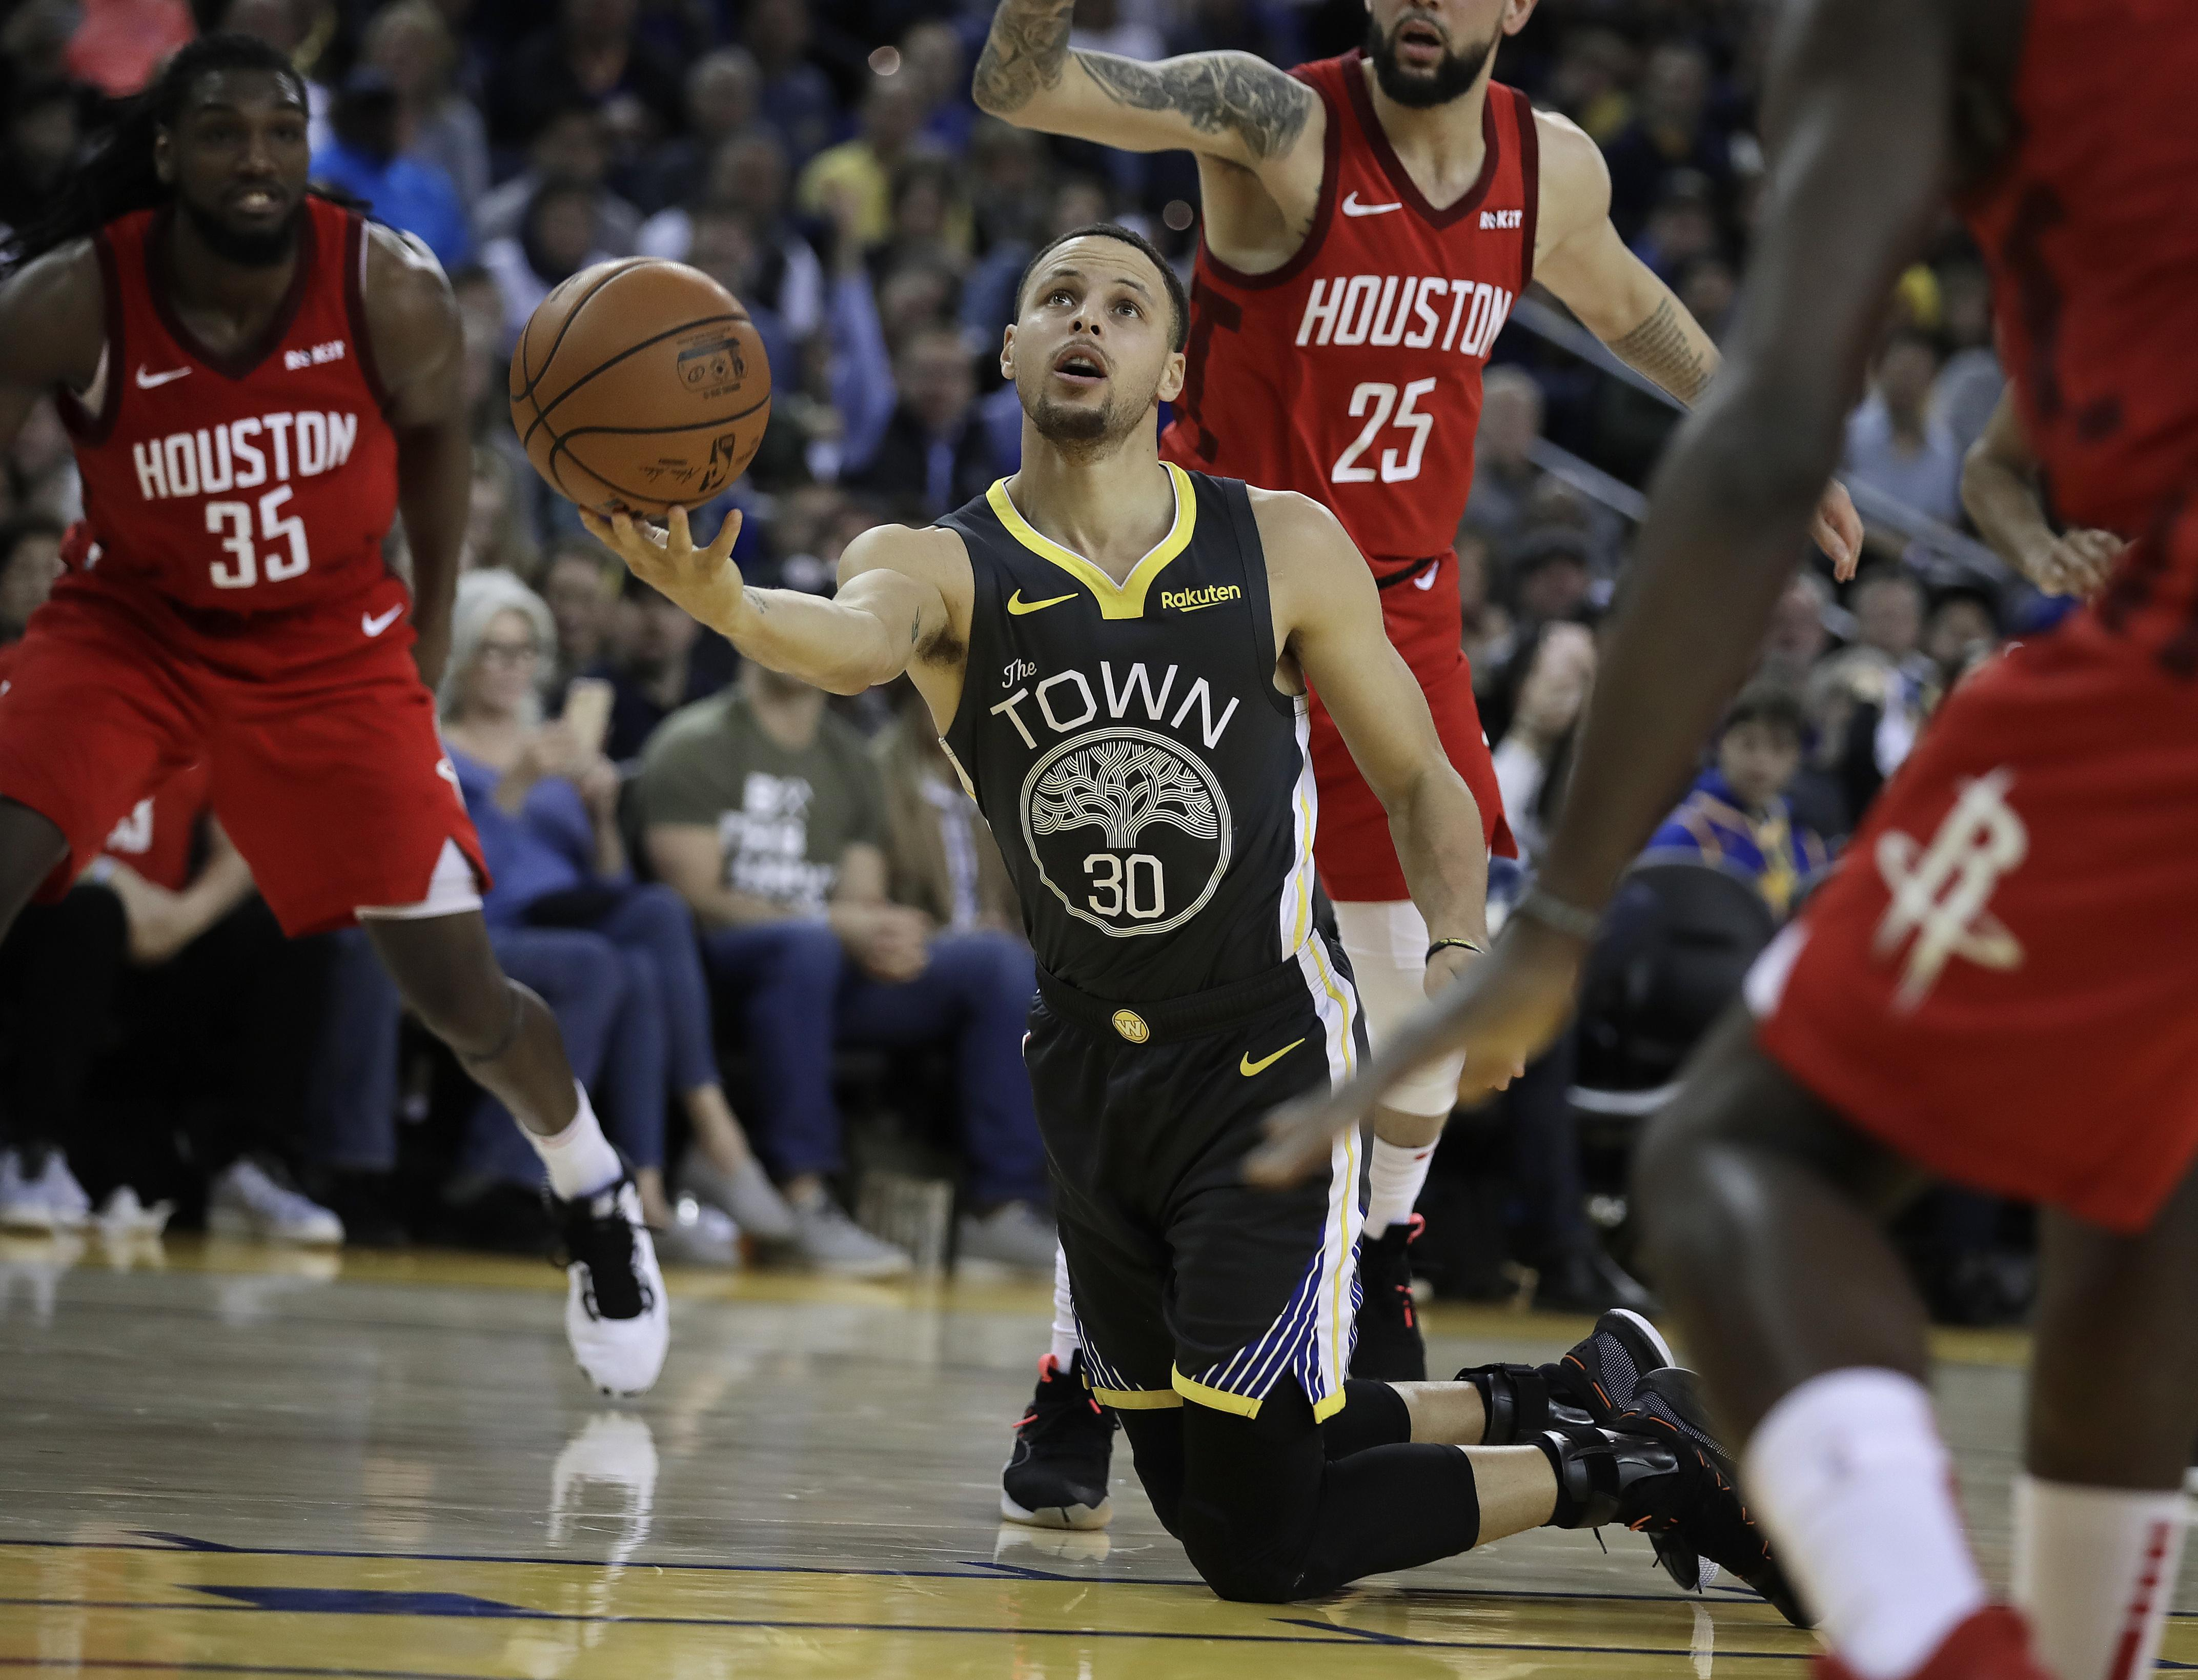 995562bd8ad Golden State Warriors  Stephen Curry (30) shoots from his knees against  Houston on